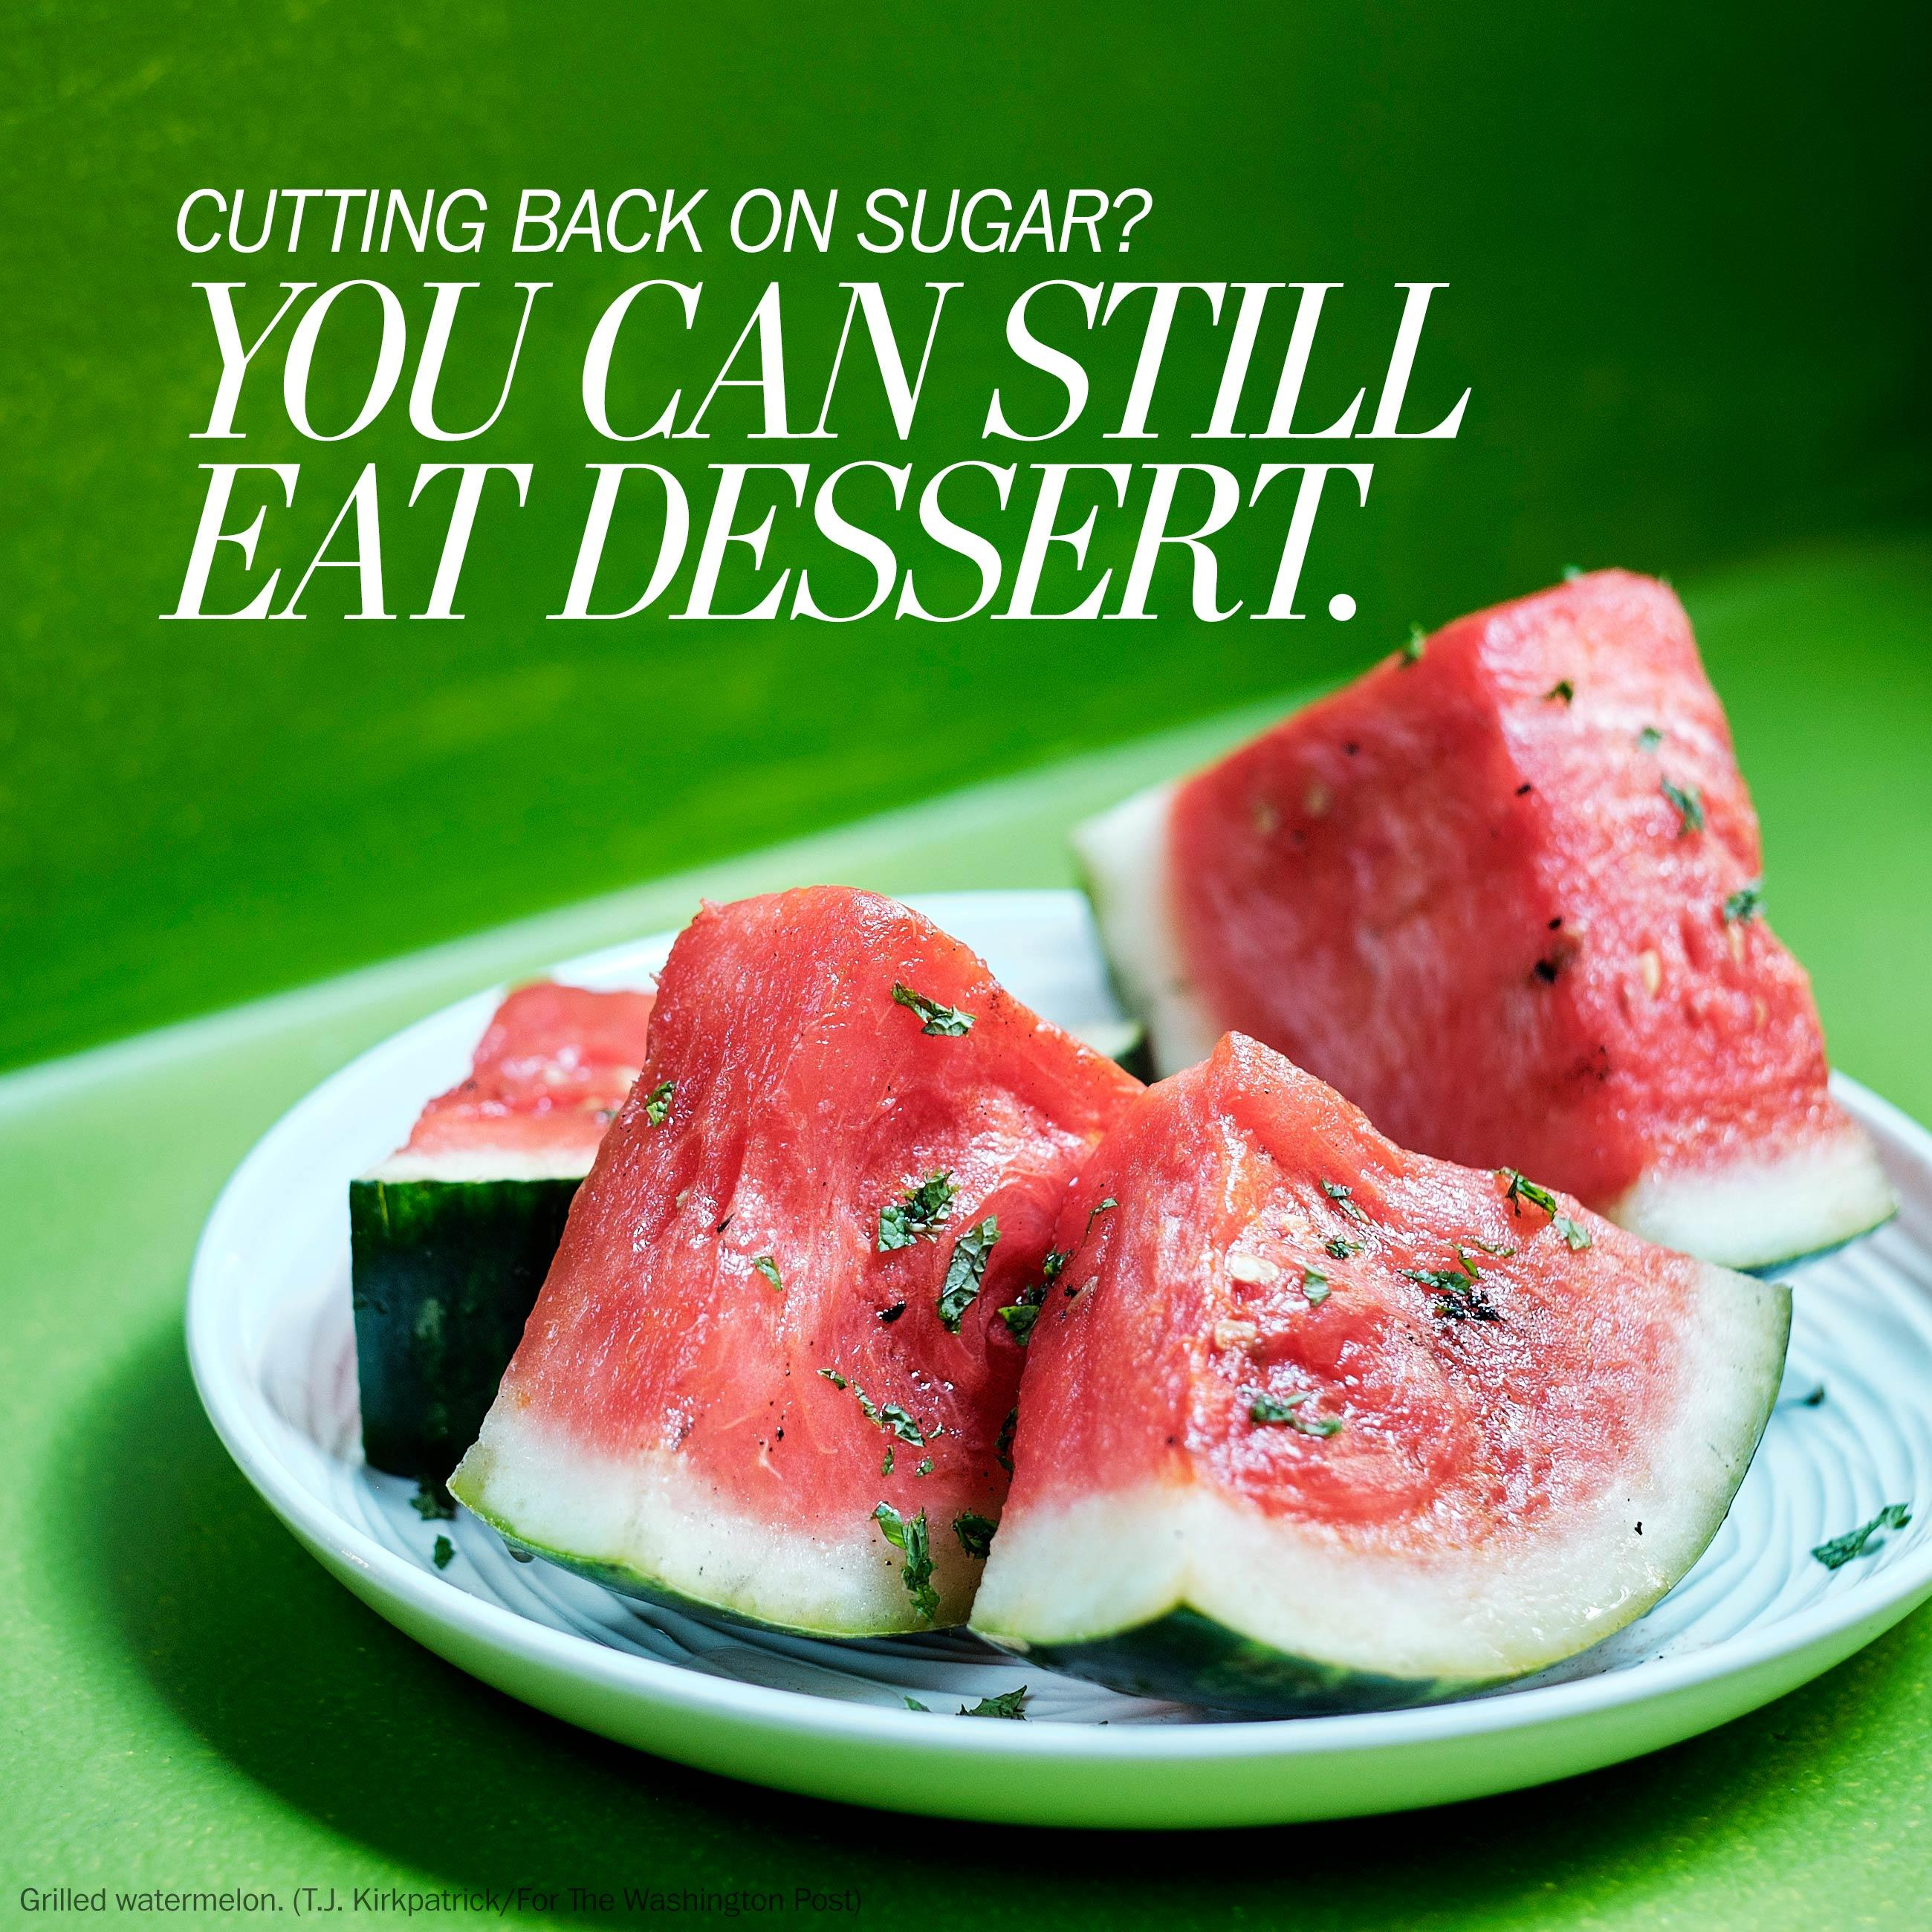 Cutting back on sugar? You can still eat dessert.